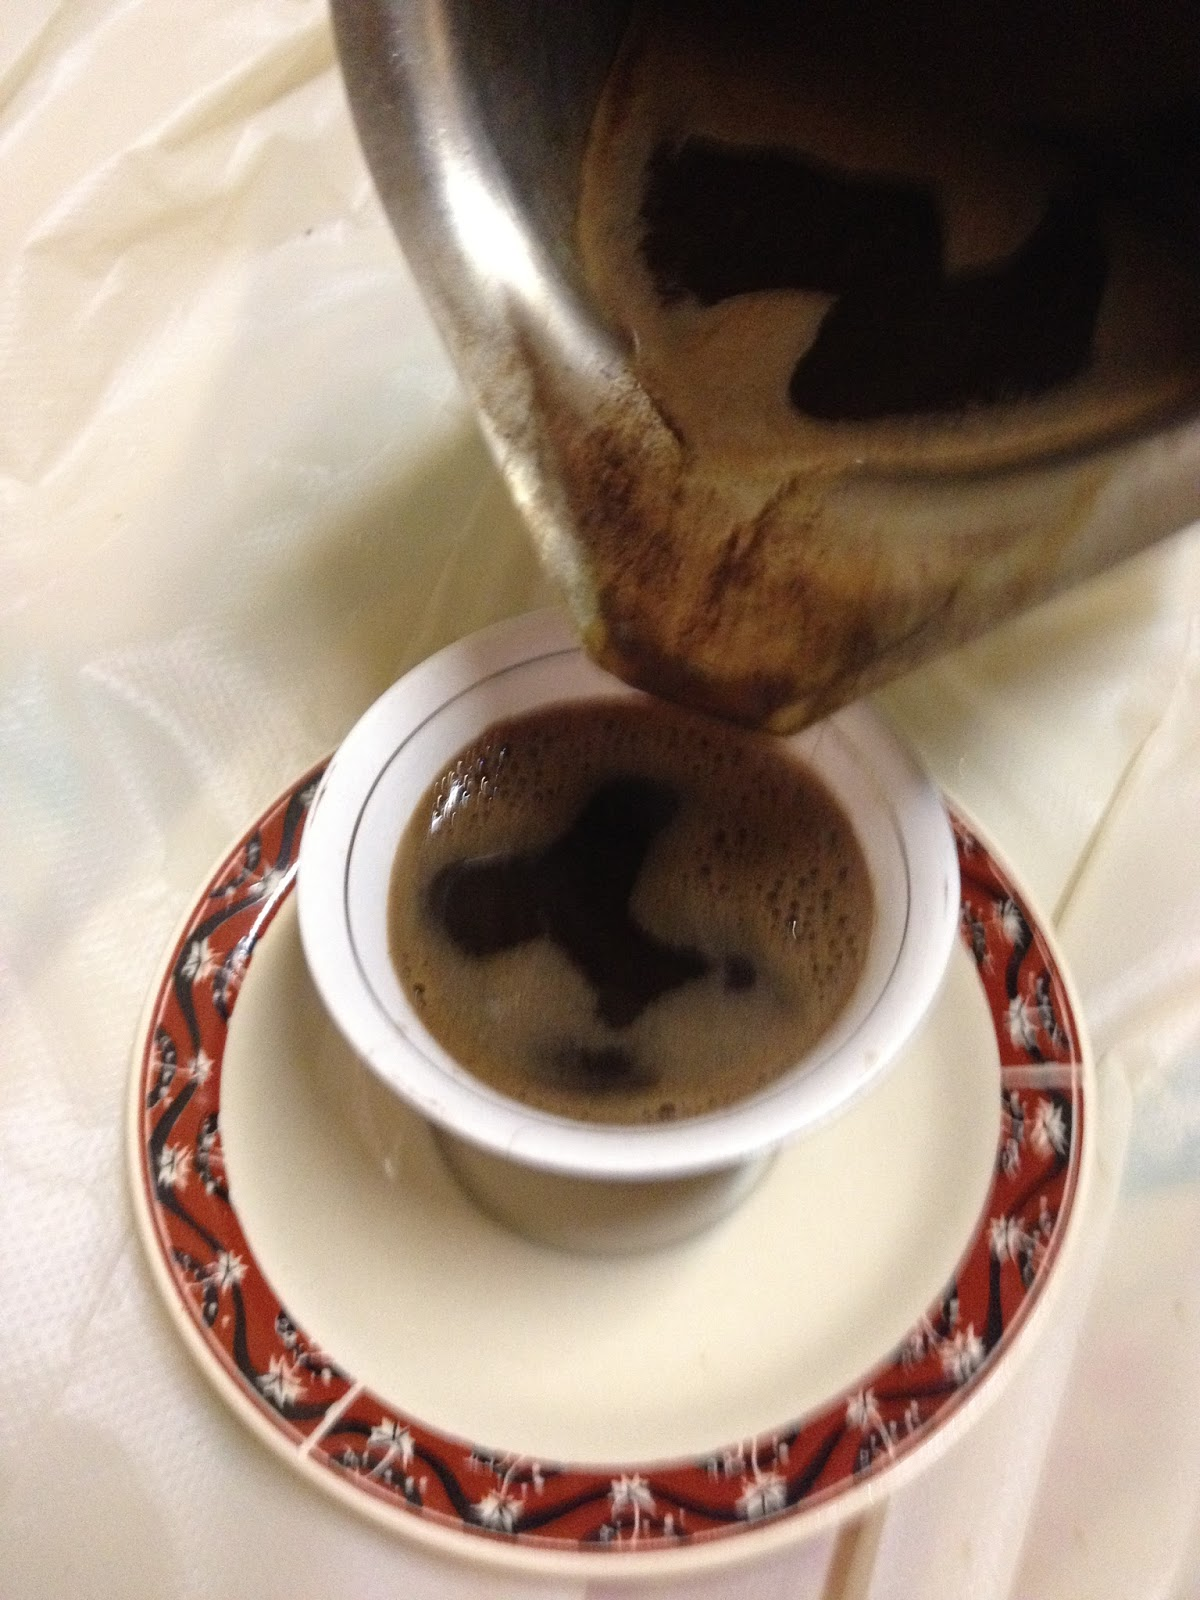 Arab culture literature and history arab divination and fortune arab traders brought coffee back to the peninsula from ethiopia where legend has it coffee beans were first discovered by a goat herder in that golden buycottarizona Image collections